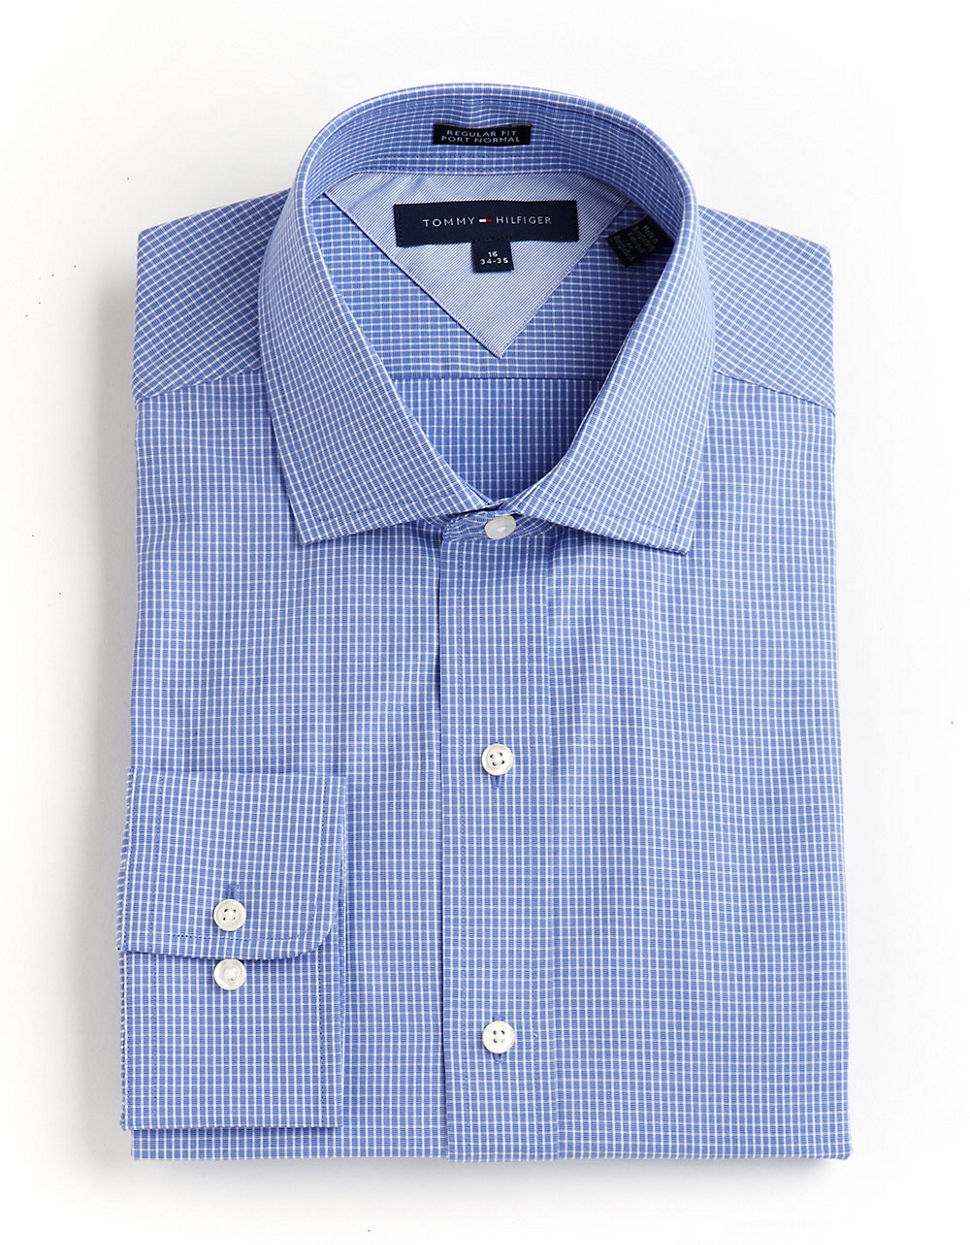 Tommy hilfiger Tommy Hilfiger Ls Regular Fit Dress Shirt blue 18  34/35